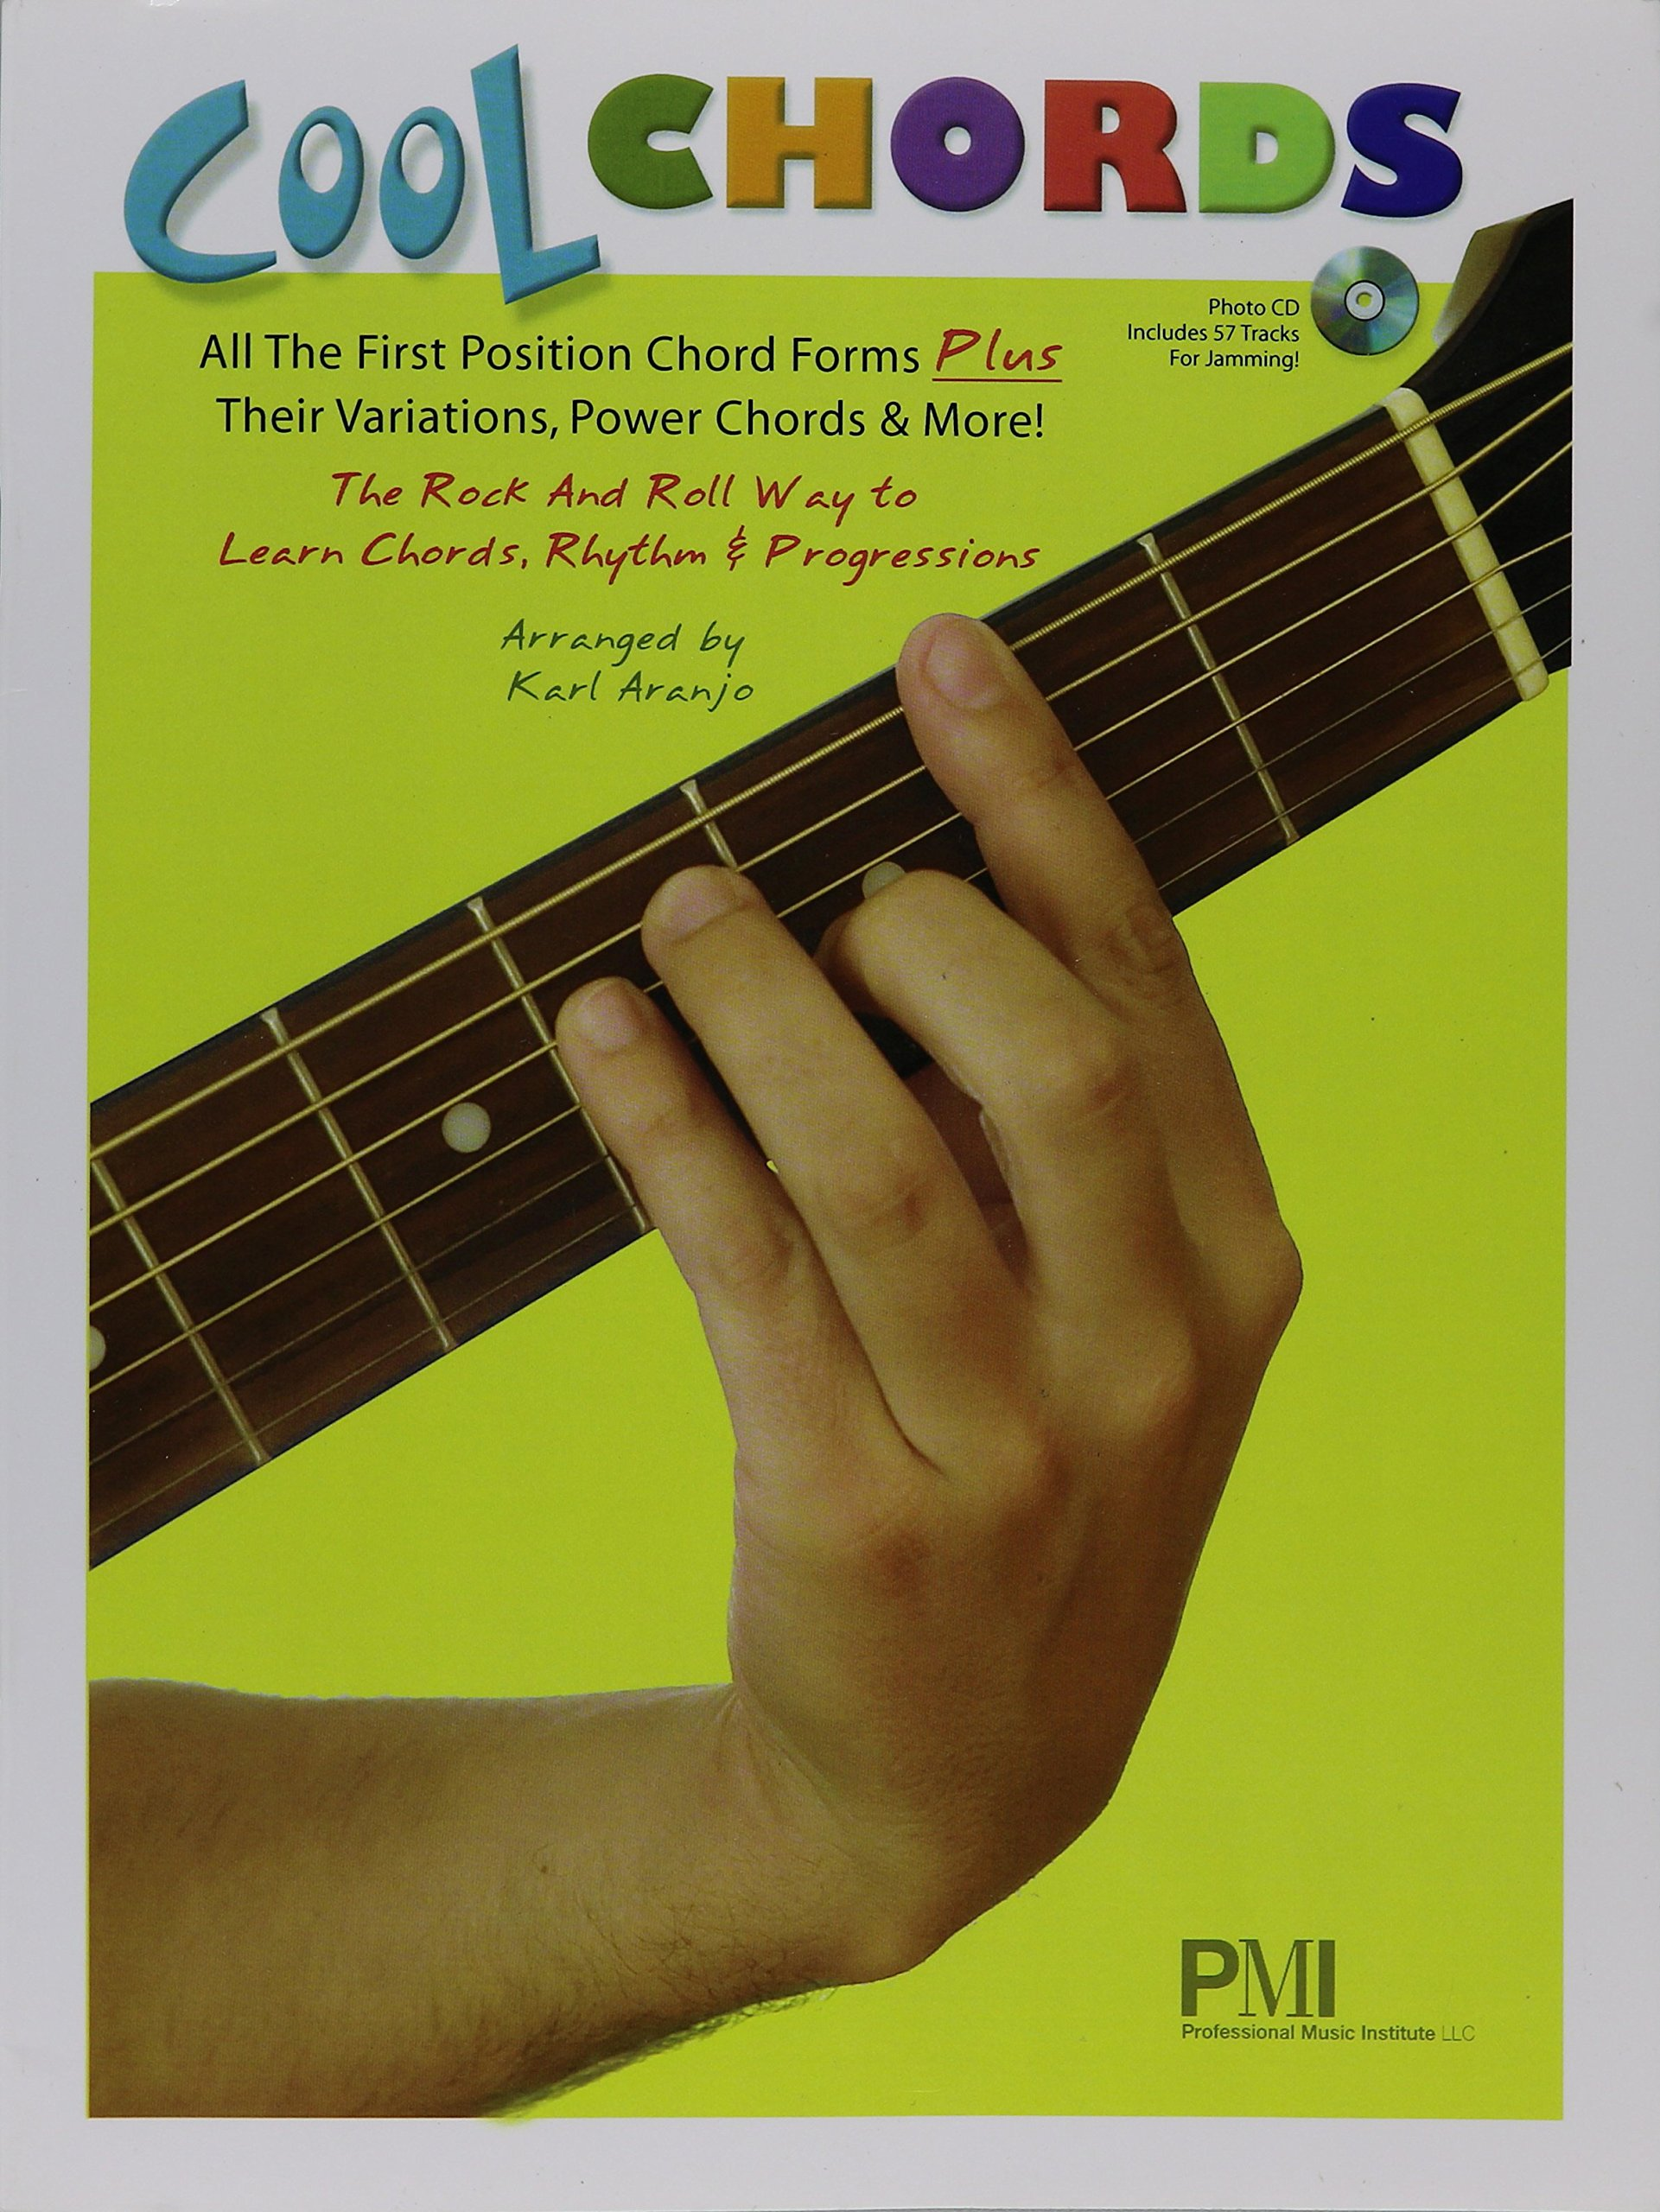 Cool Chords For Guitar Wcd The Rock Way To Learn Chords Rhythm